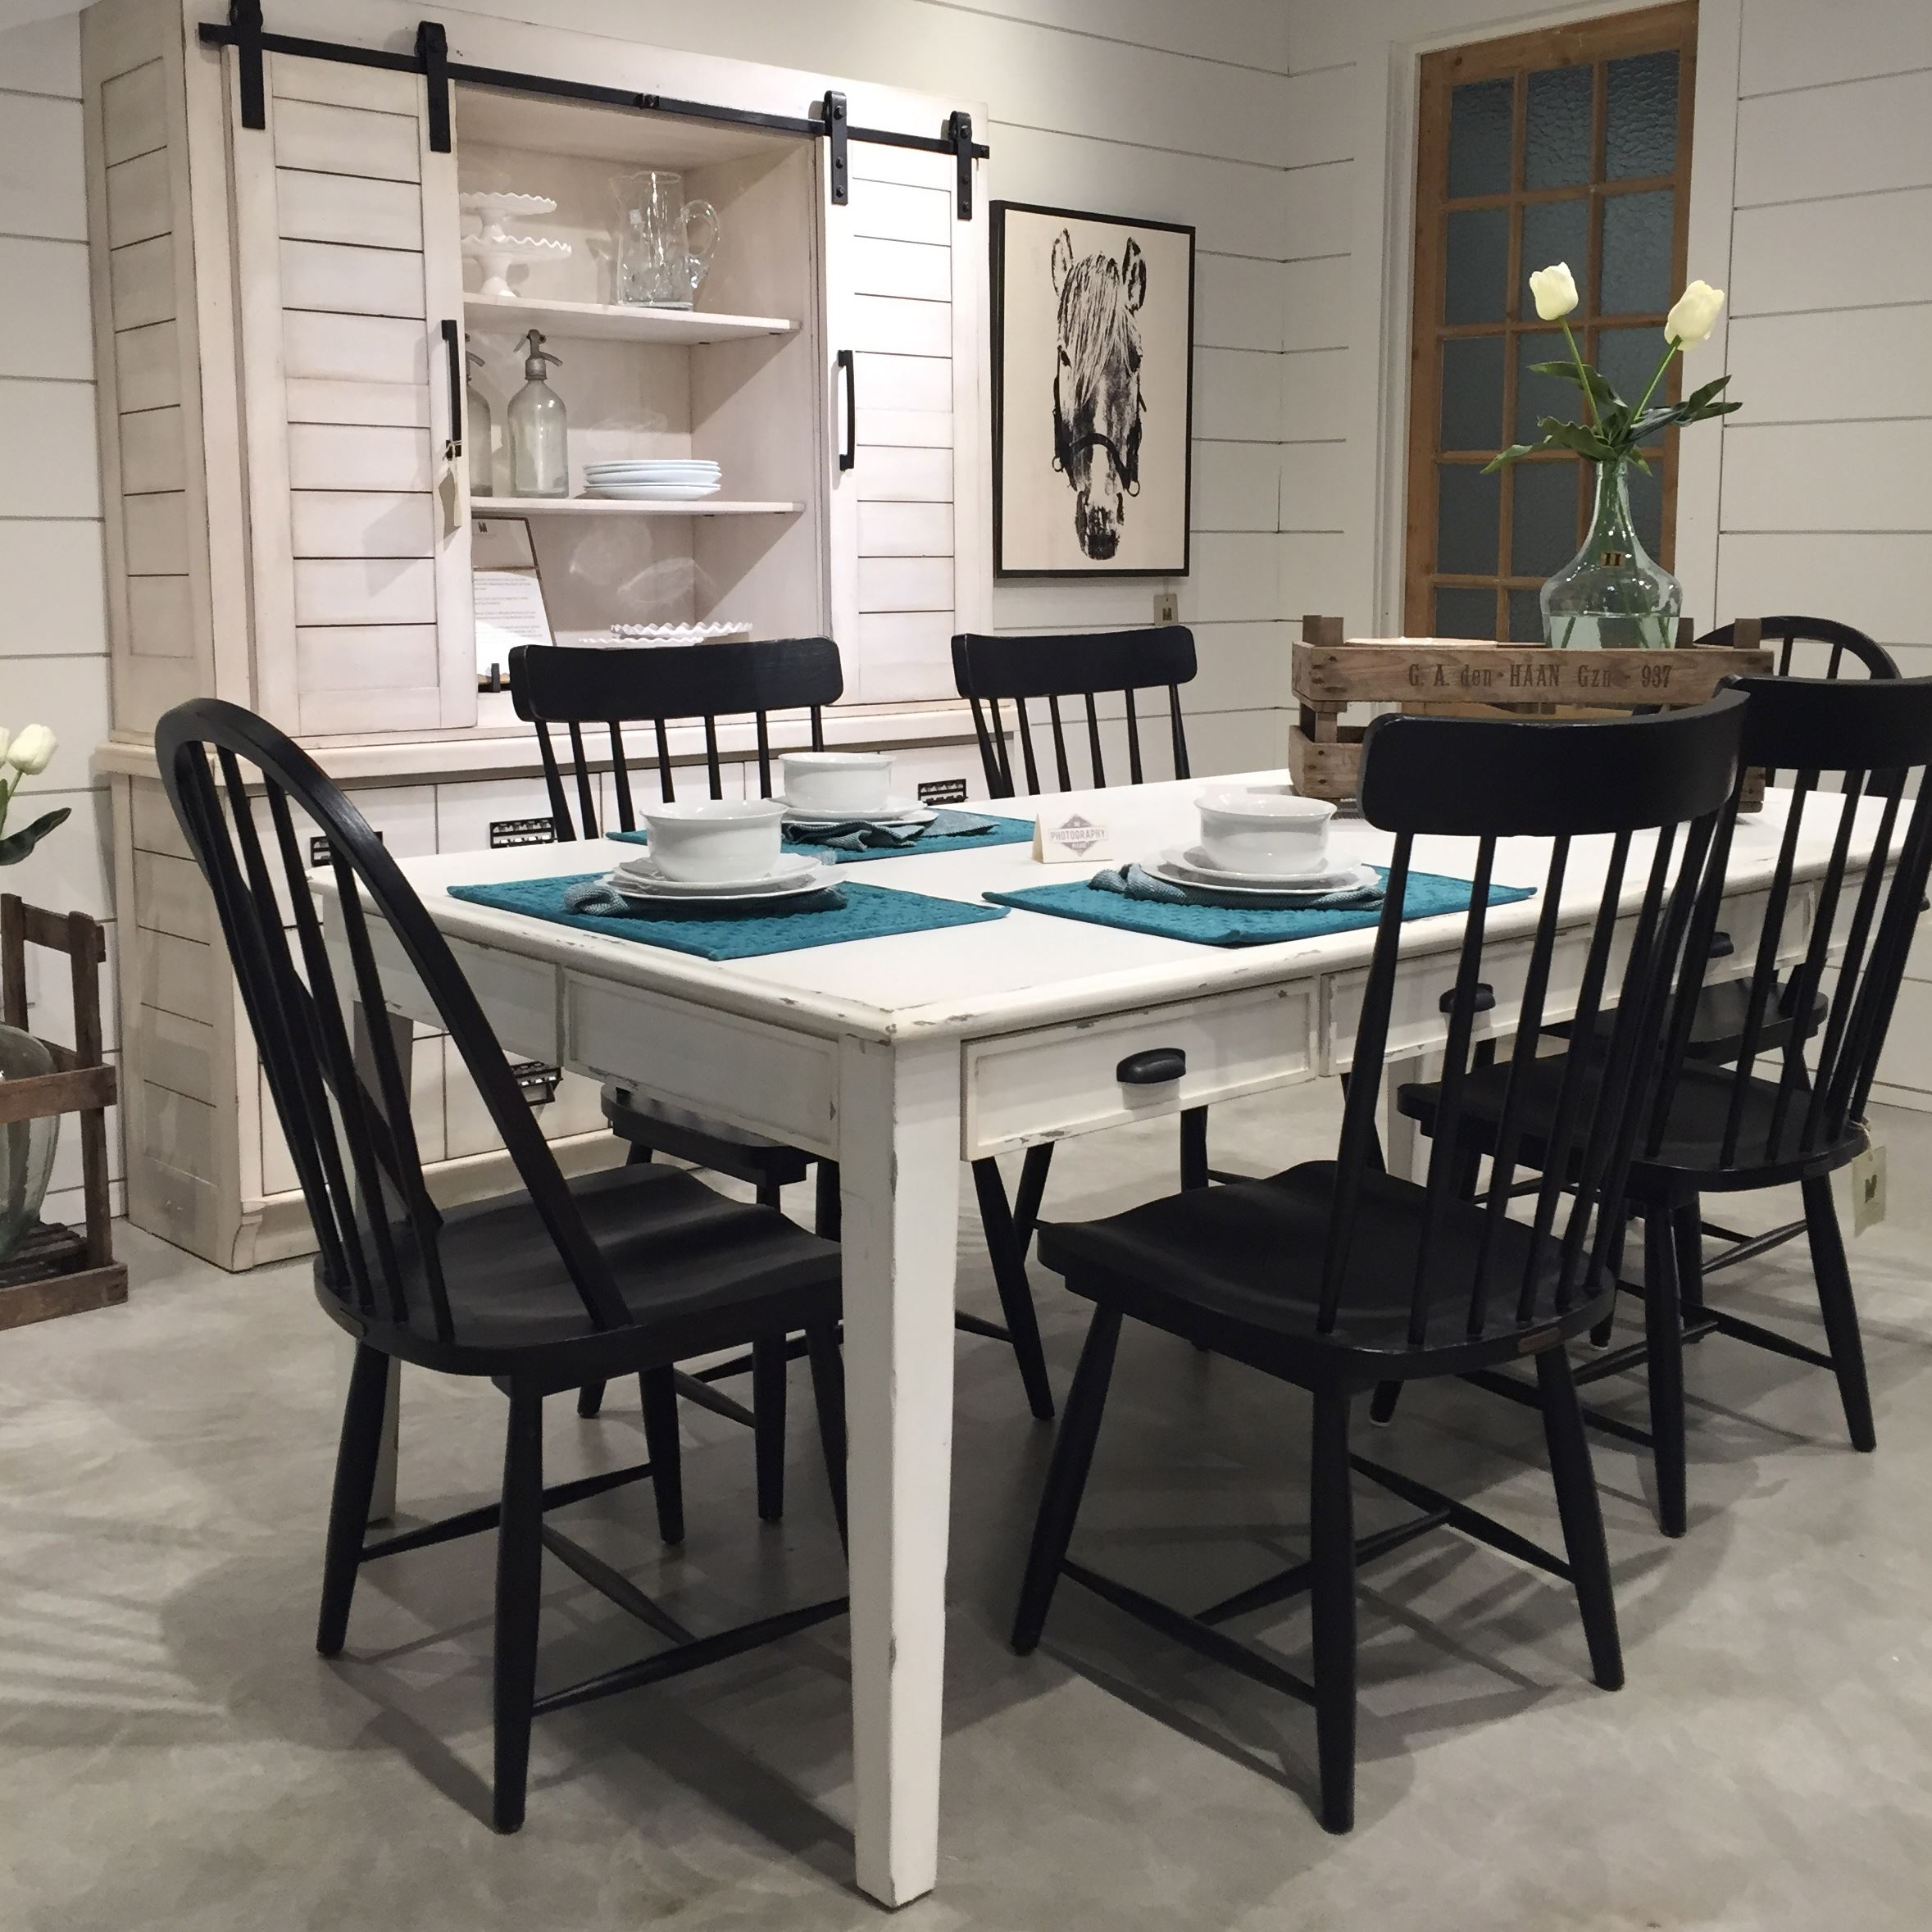 HGTV's 'Fixer Upper' Host Introduces Furniture Line